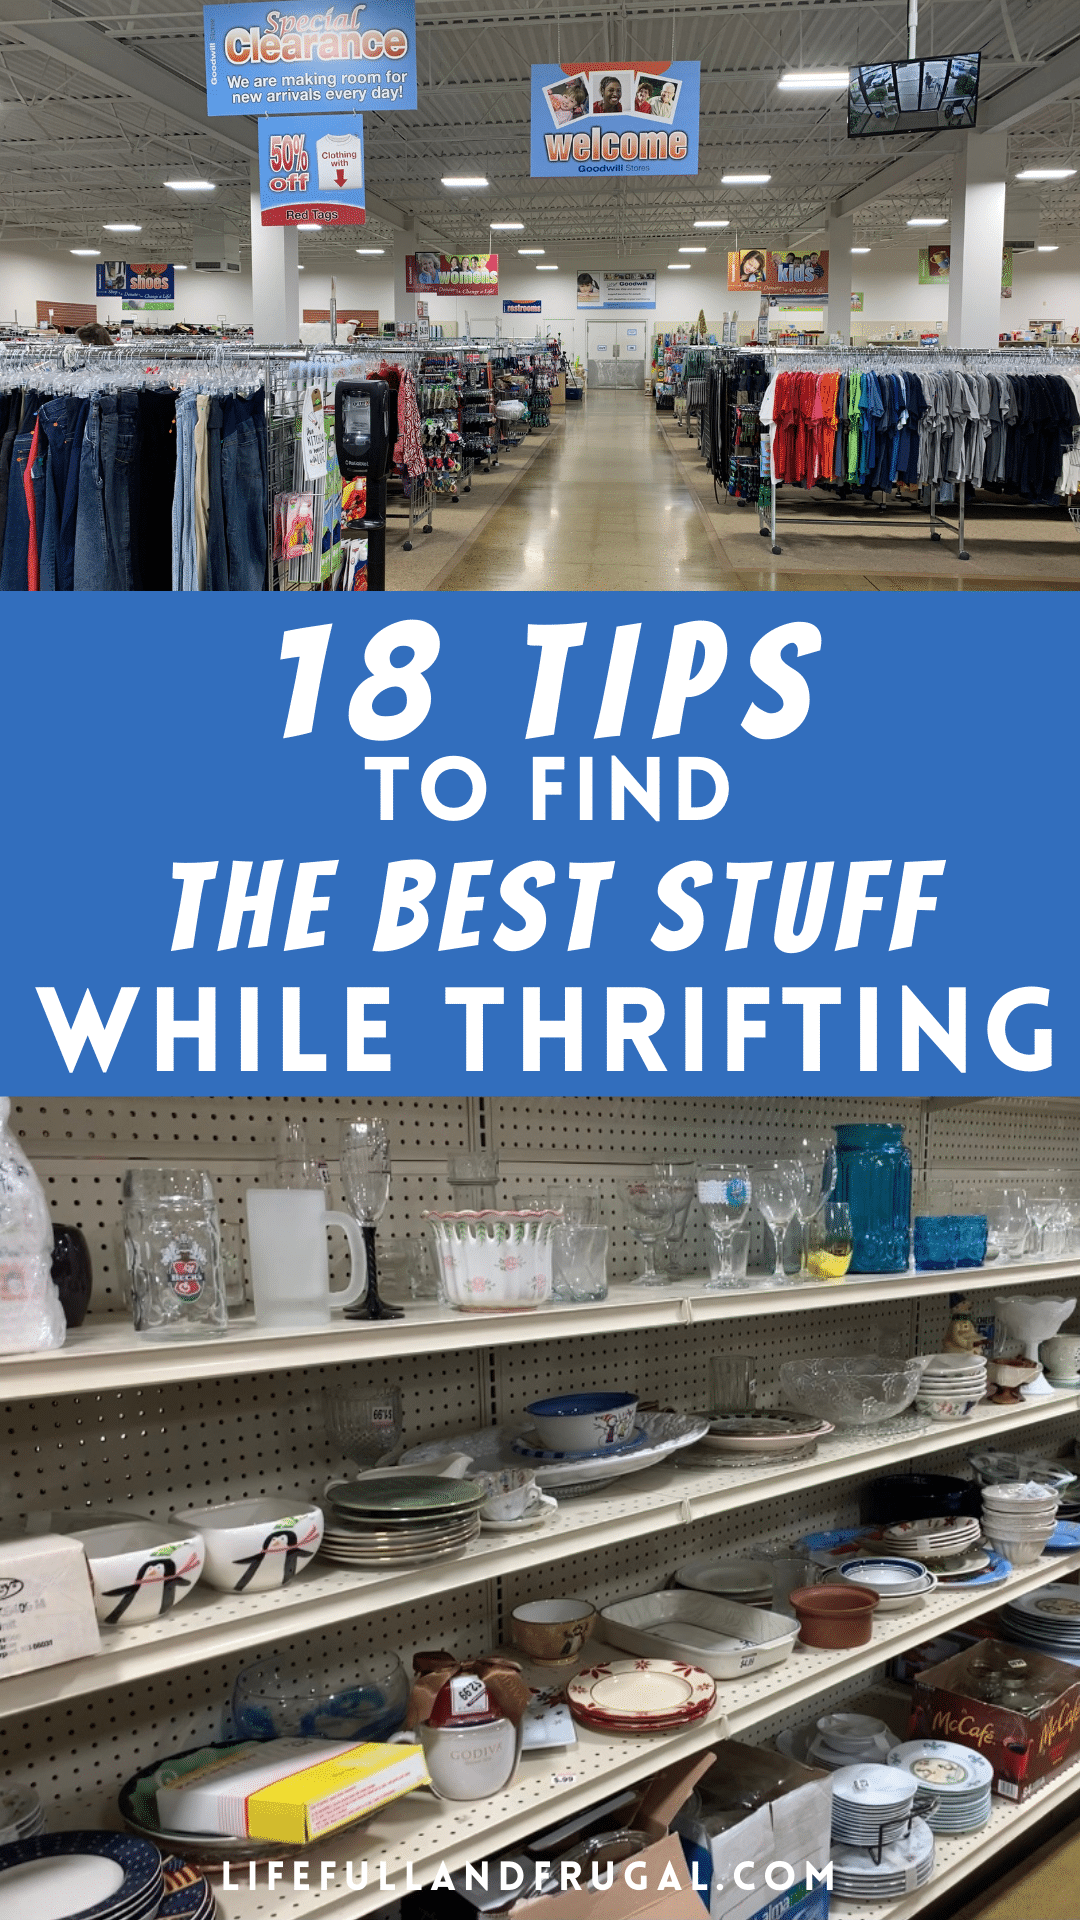 18 tips to find the best stuff while thrifting Pinterest